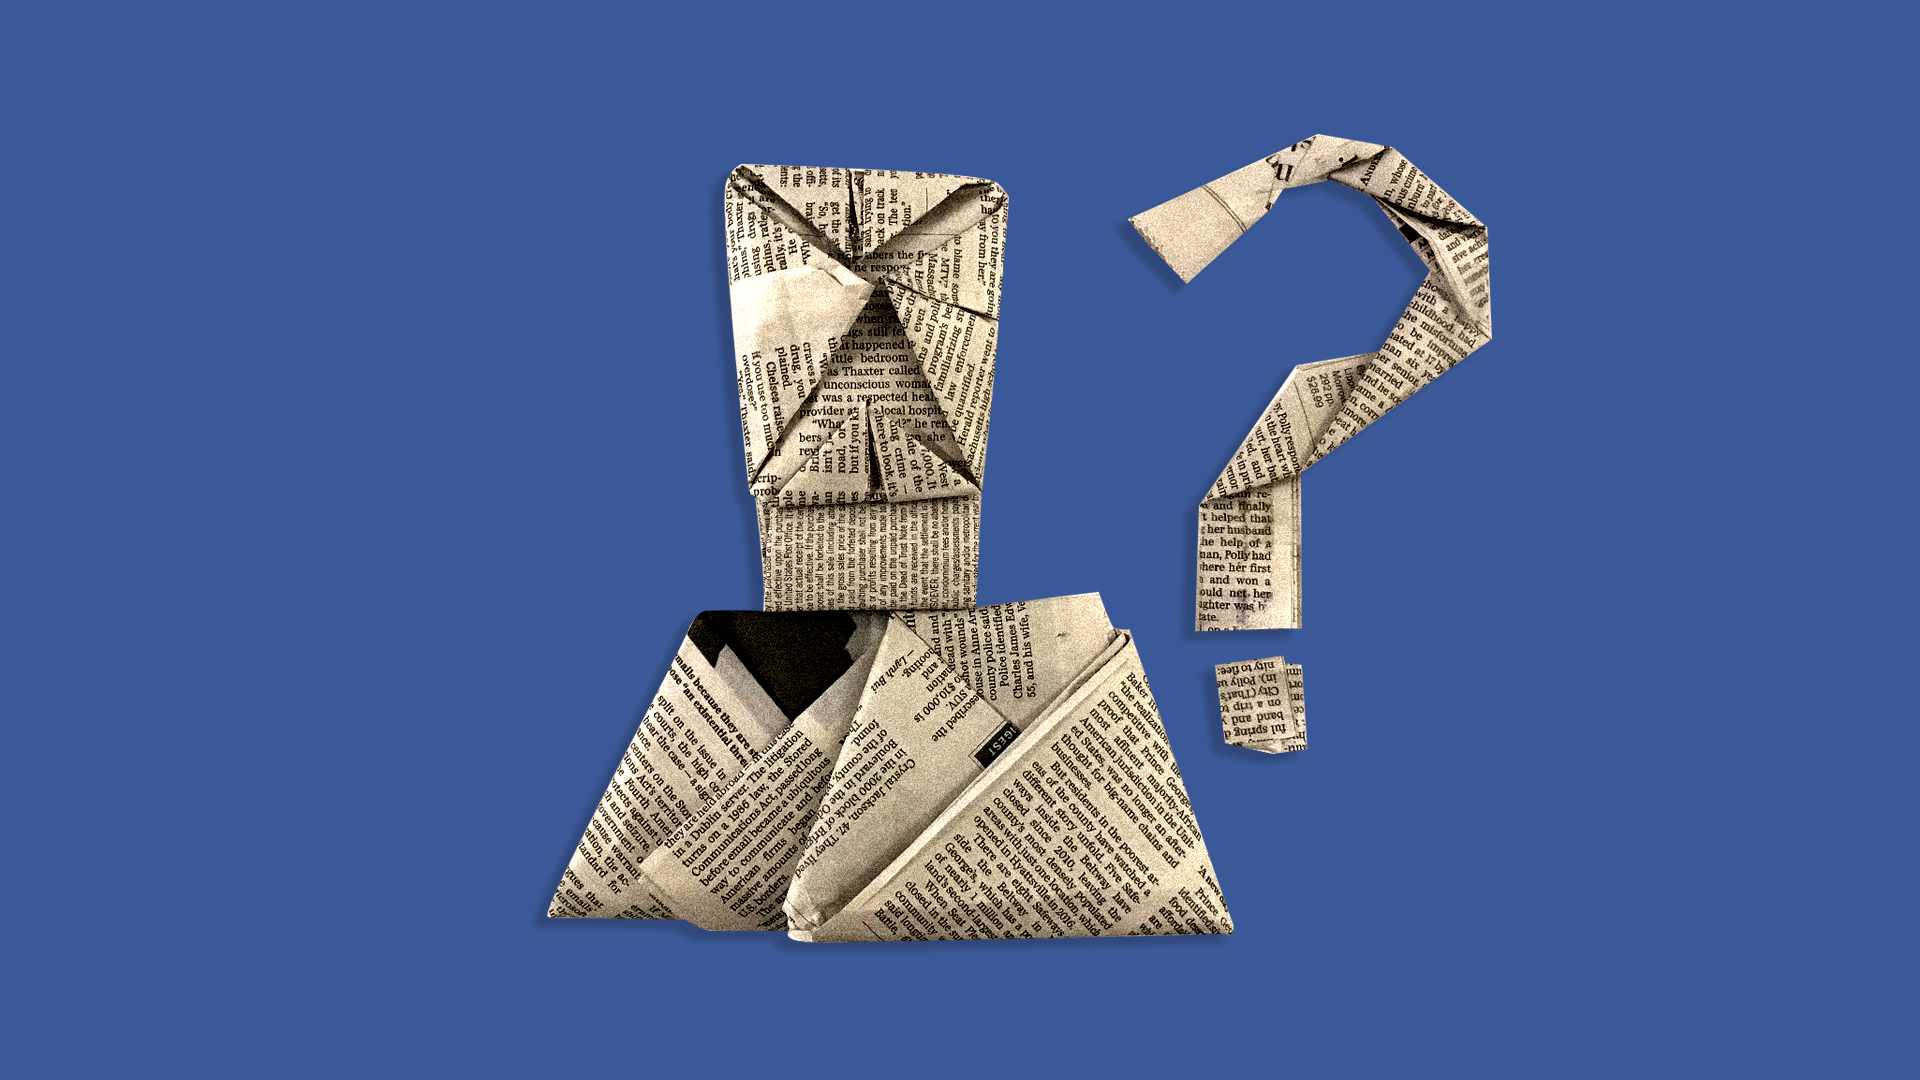 How Facebook and newspapers are becoming frenemies